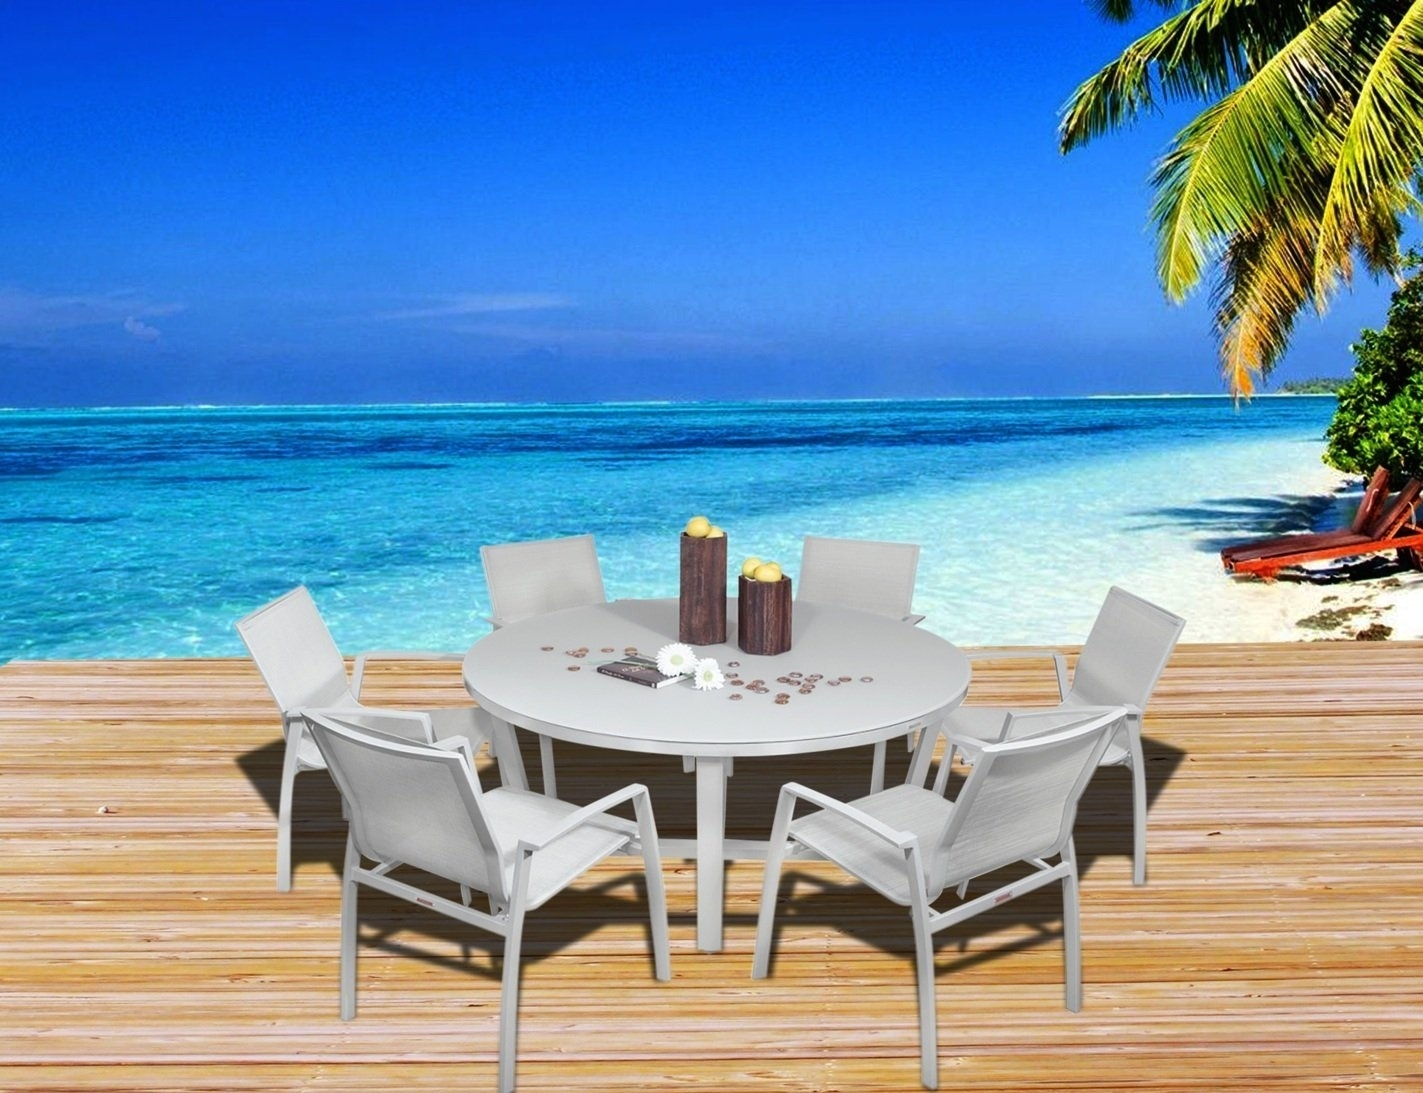 Buy Outdoor Patio Furniture New Aluminum Gray Frosted Glass 7 Piece Inside Most Popular Grady 5 Piece Round Dining Sets (Image 4 of 20)